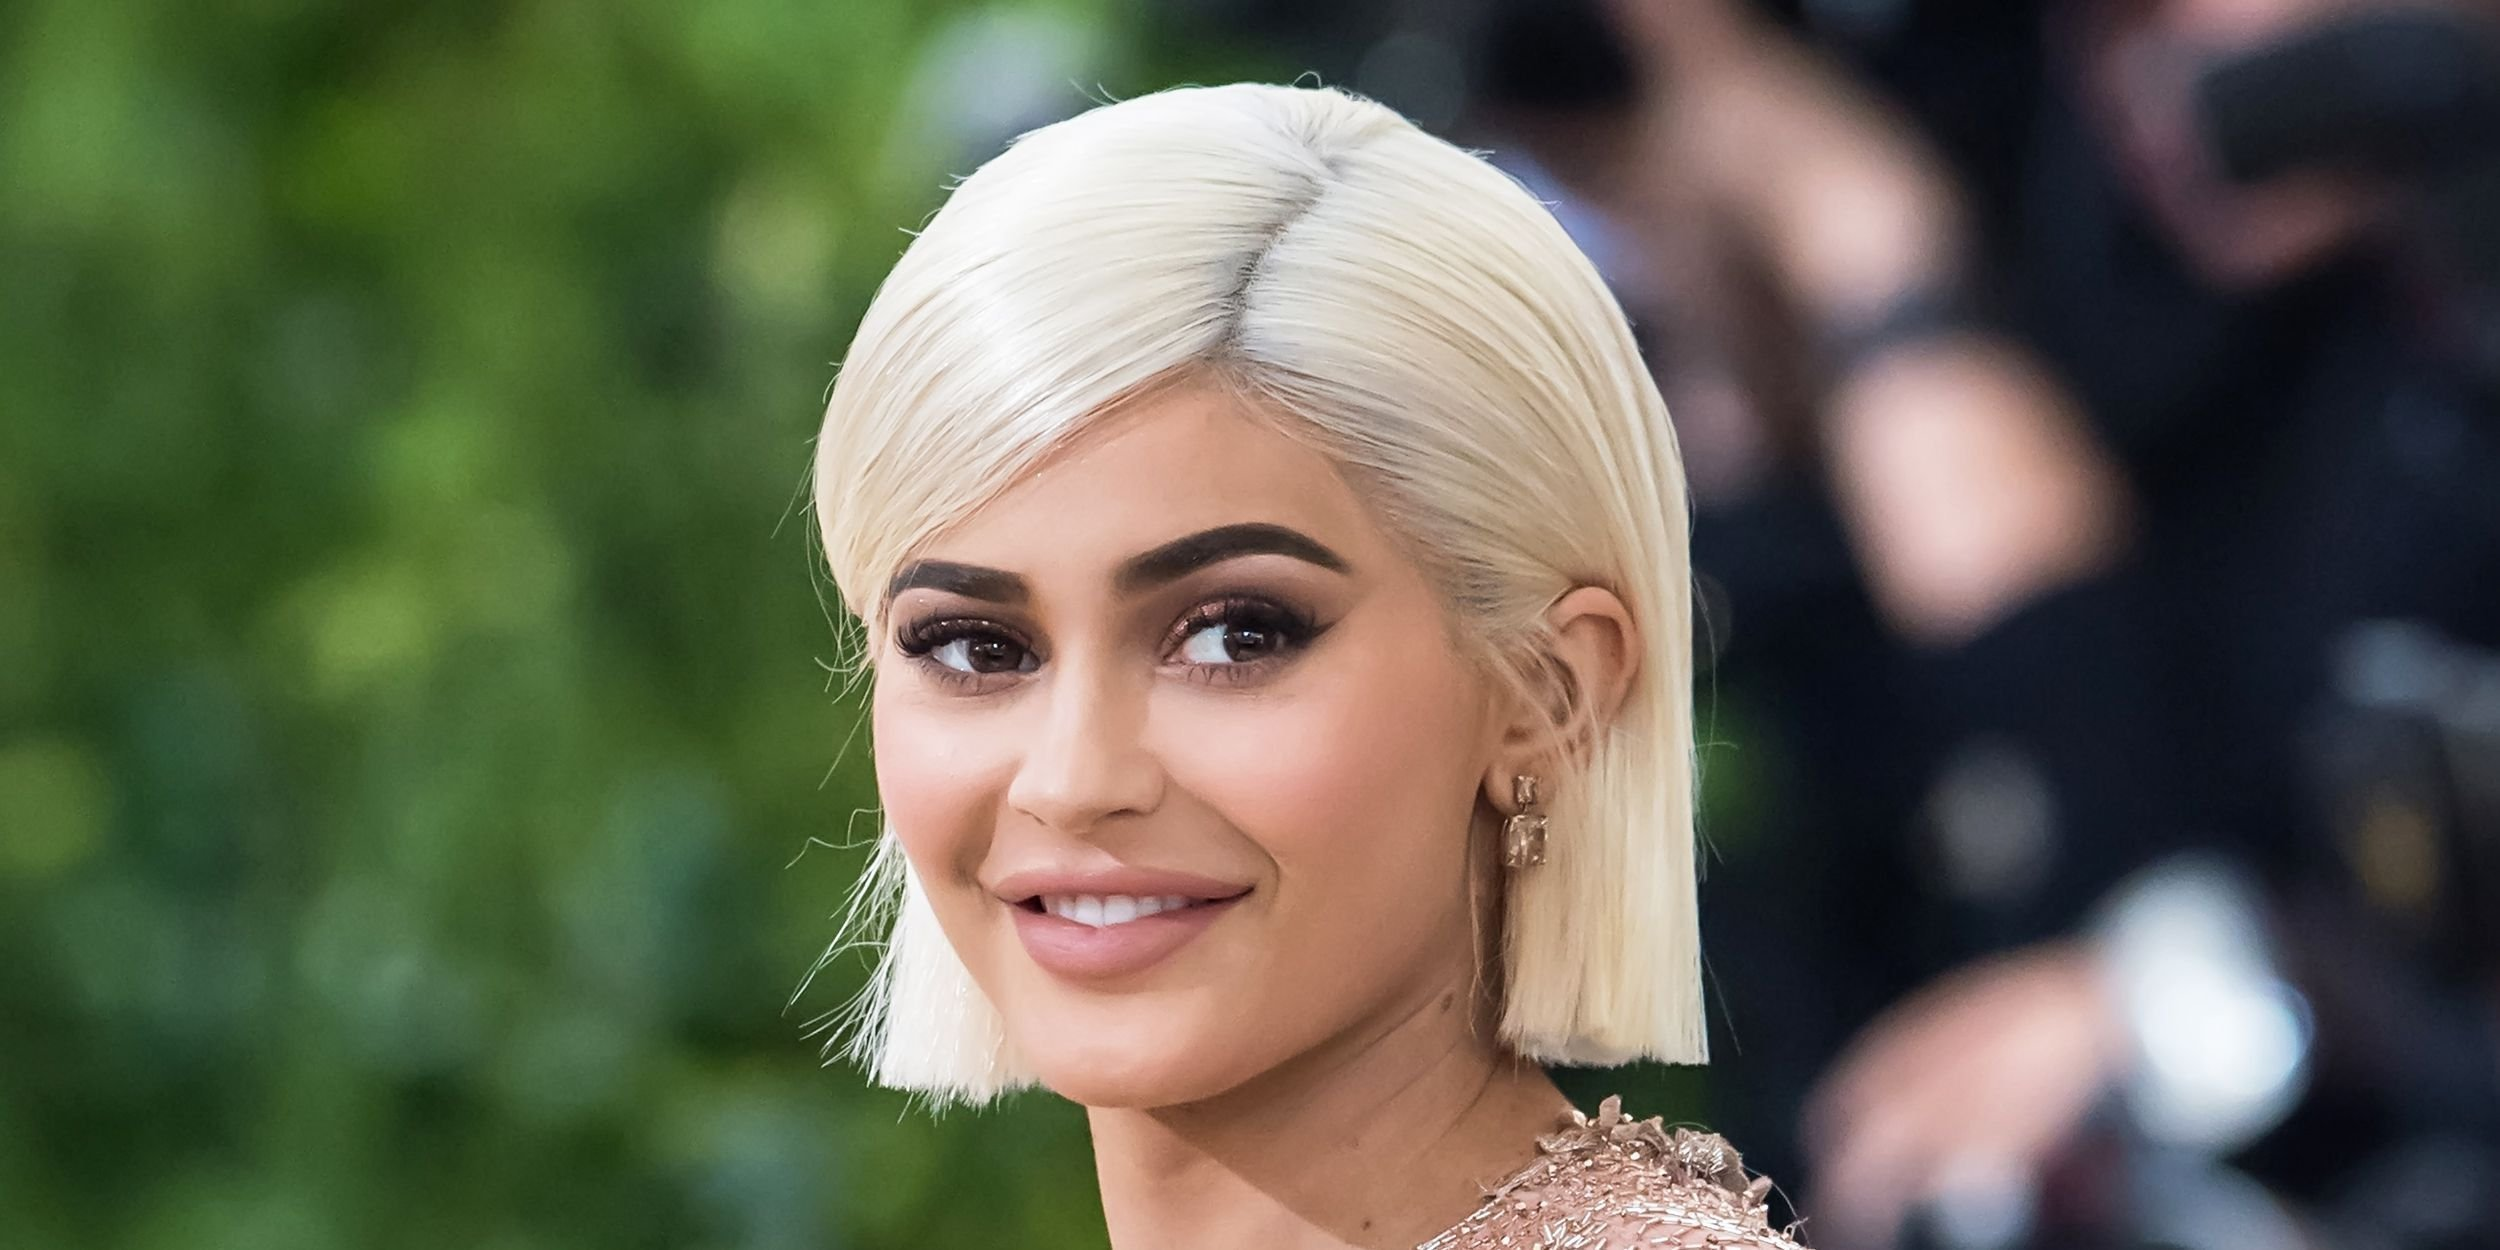 Kylie Jenner Just Posted Her First Selfie with Baby Stormi